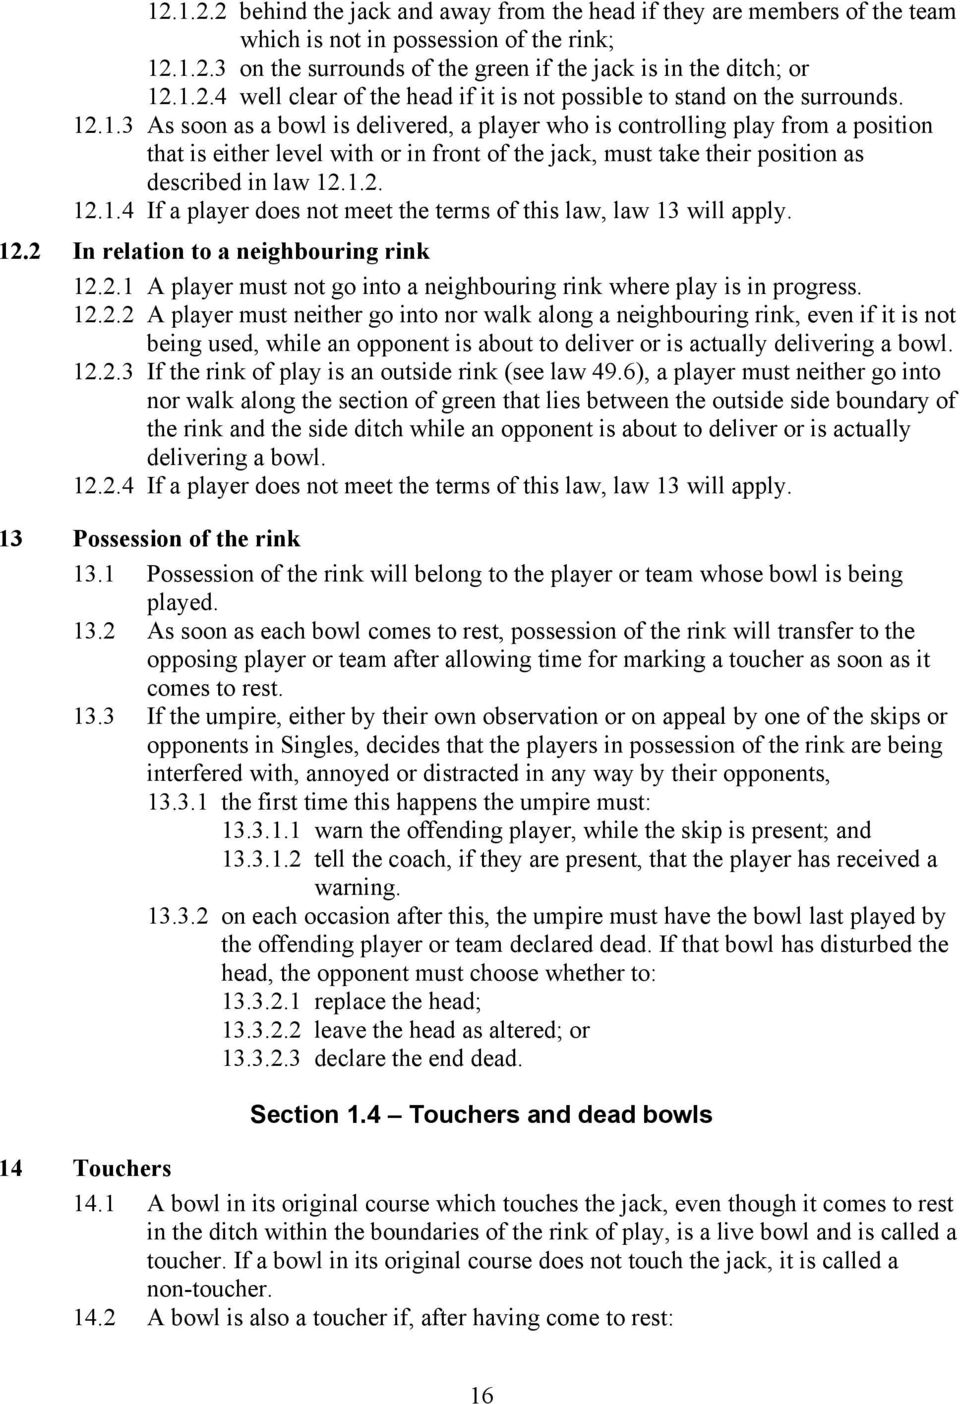 12.2 In relation to a neighbouring rink 12.2.1 A player must not go into a neighbouring rink where play is in progress. 12.2.2 A player must neither go into nor walk along a neighbouring rink, even if it is not being used, while an opponent is about to deliver or is actually delivering a bowl.